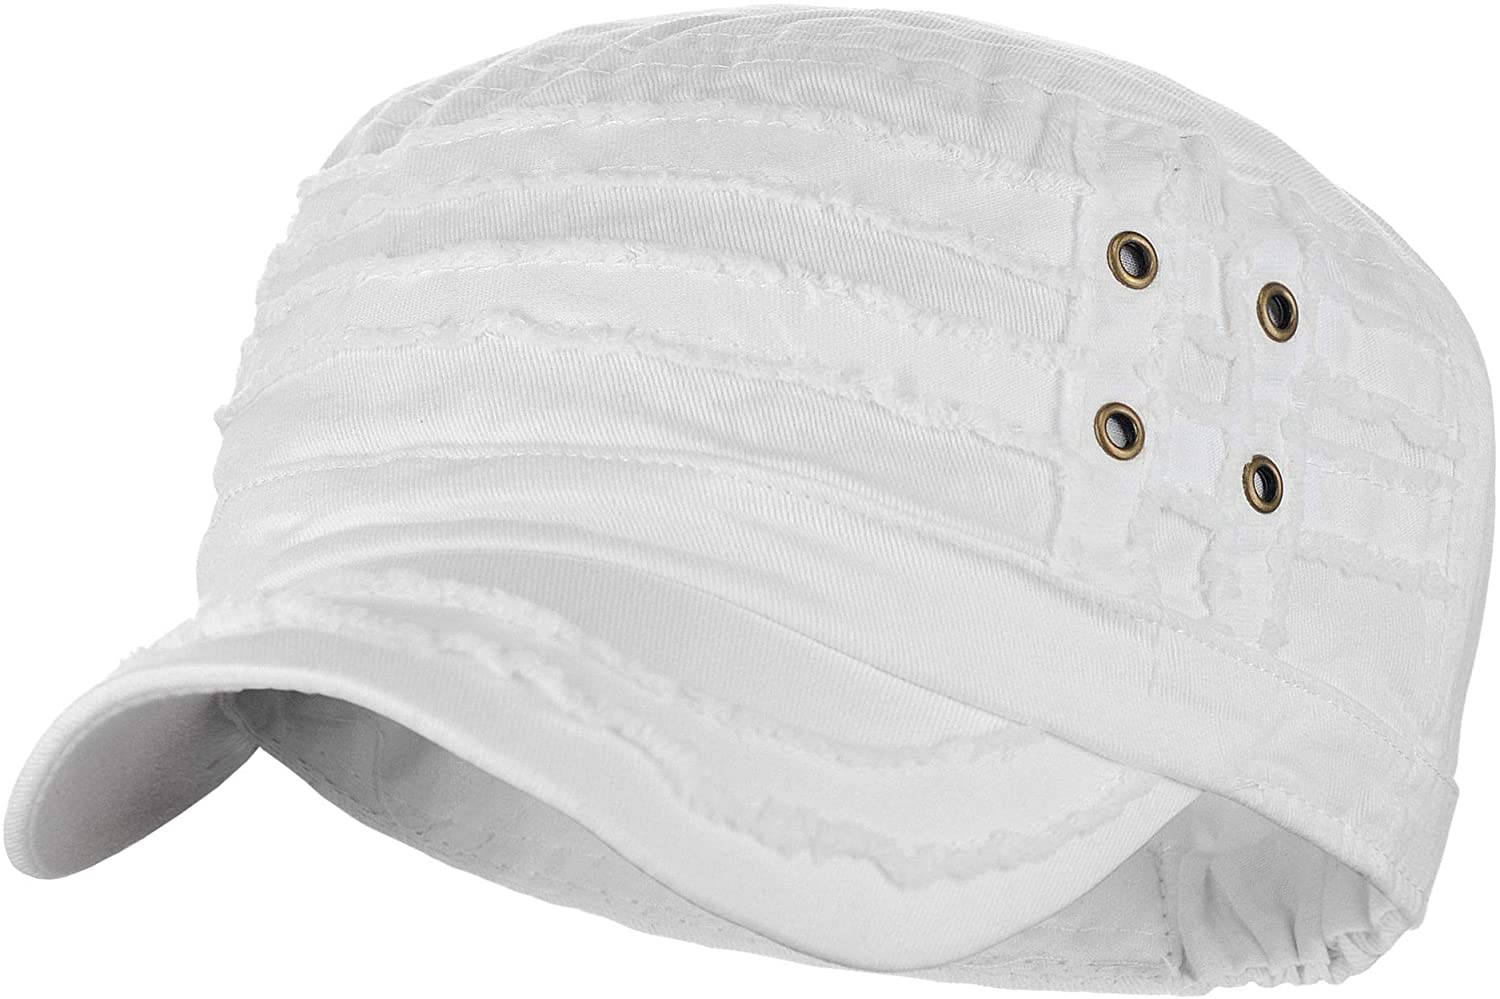 D&Y Unisex Cotton Distressed Layered Frayed Cadet Military Cap